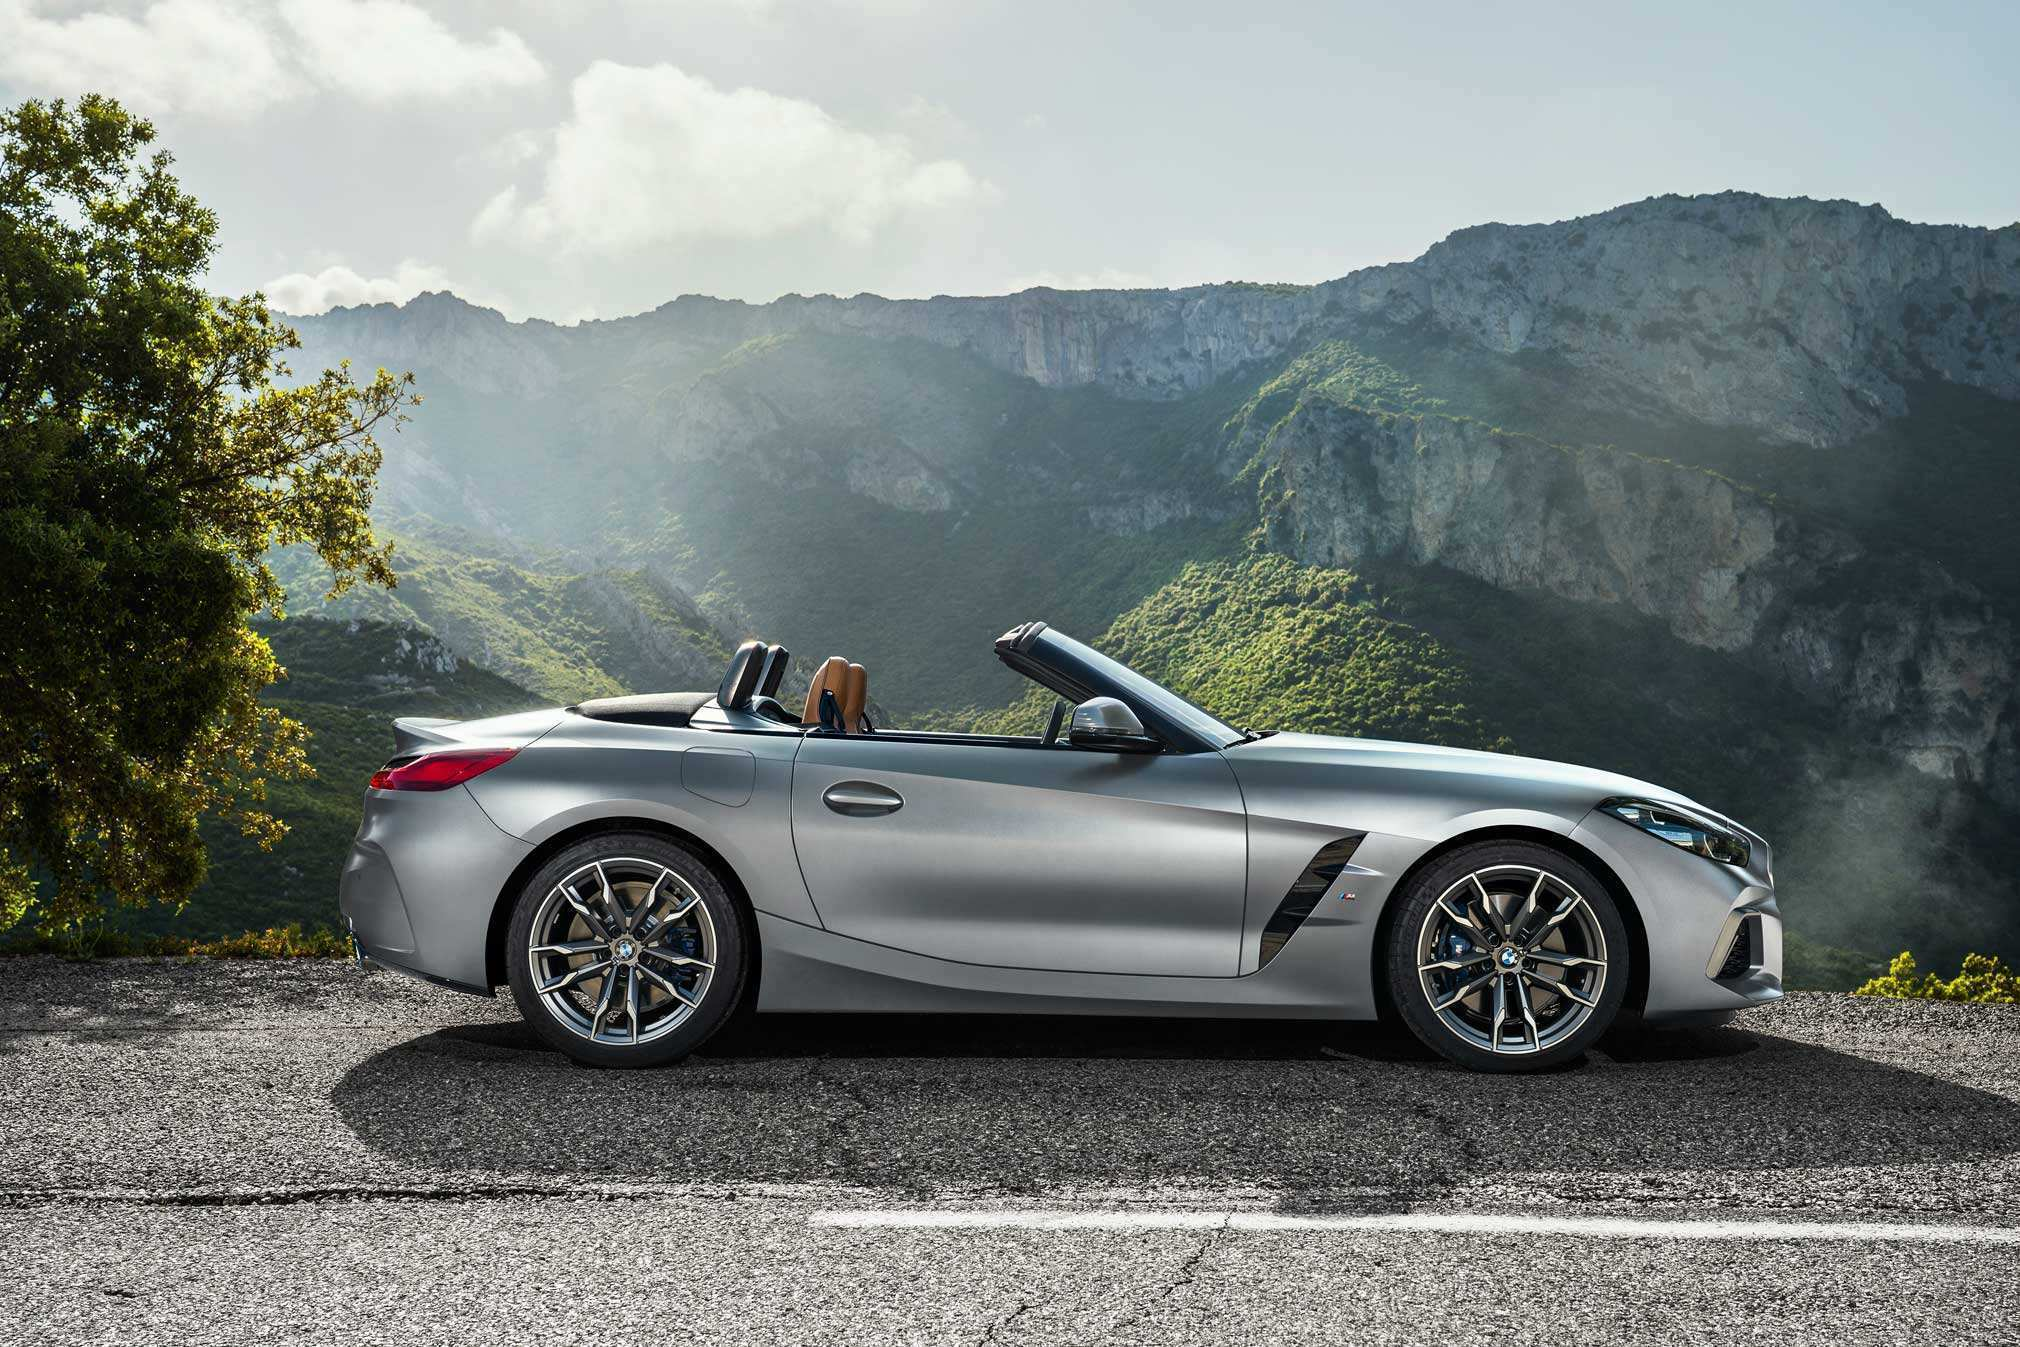 95 Best 2020 BMW Z4 Engine